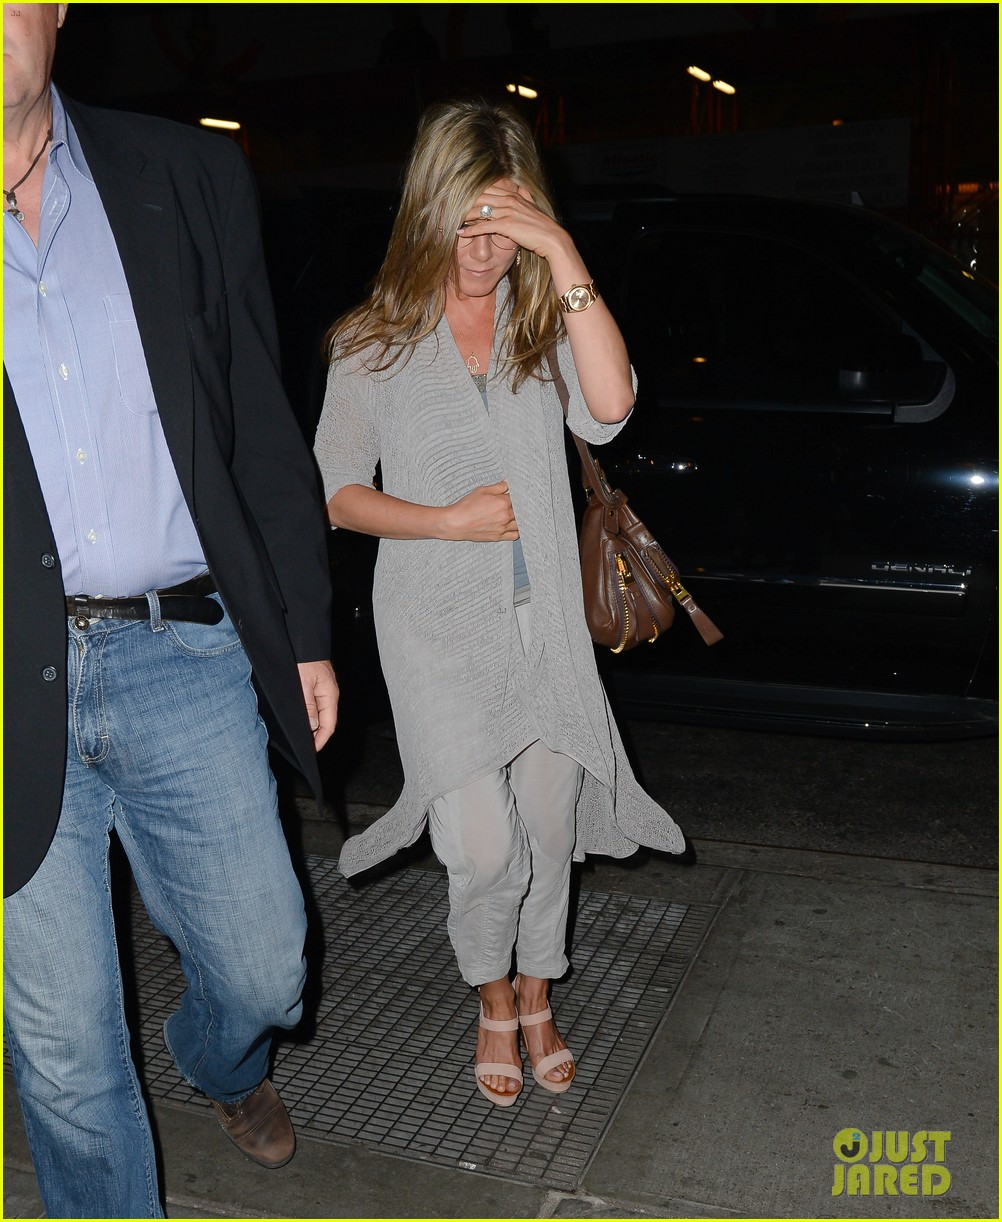 jennifer aniston attends bette midler play ill eat you last 032868083